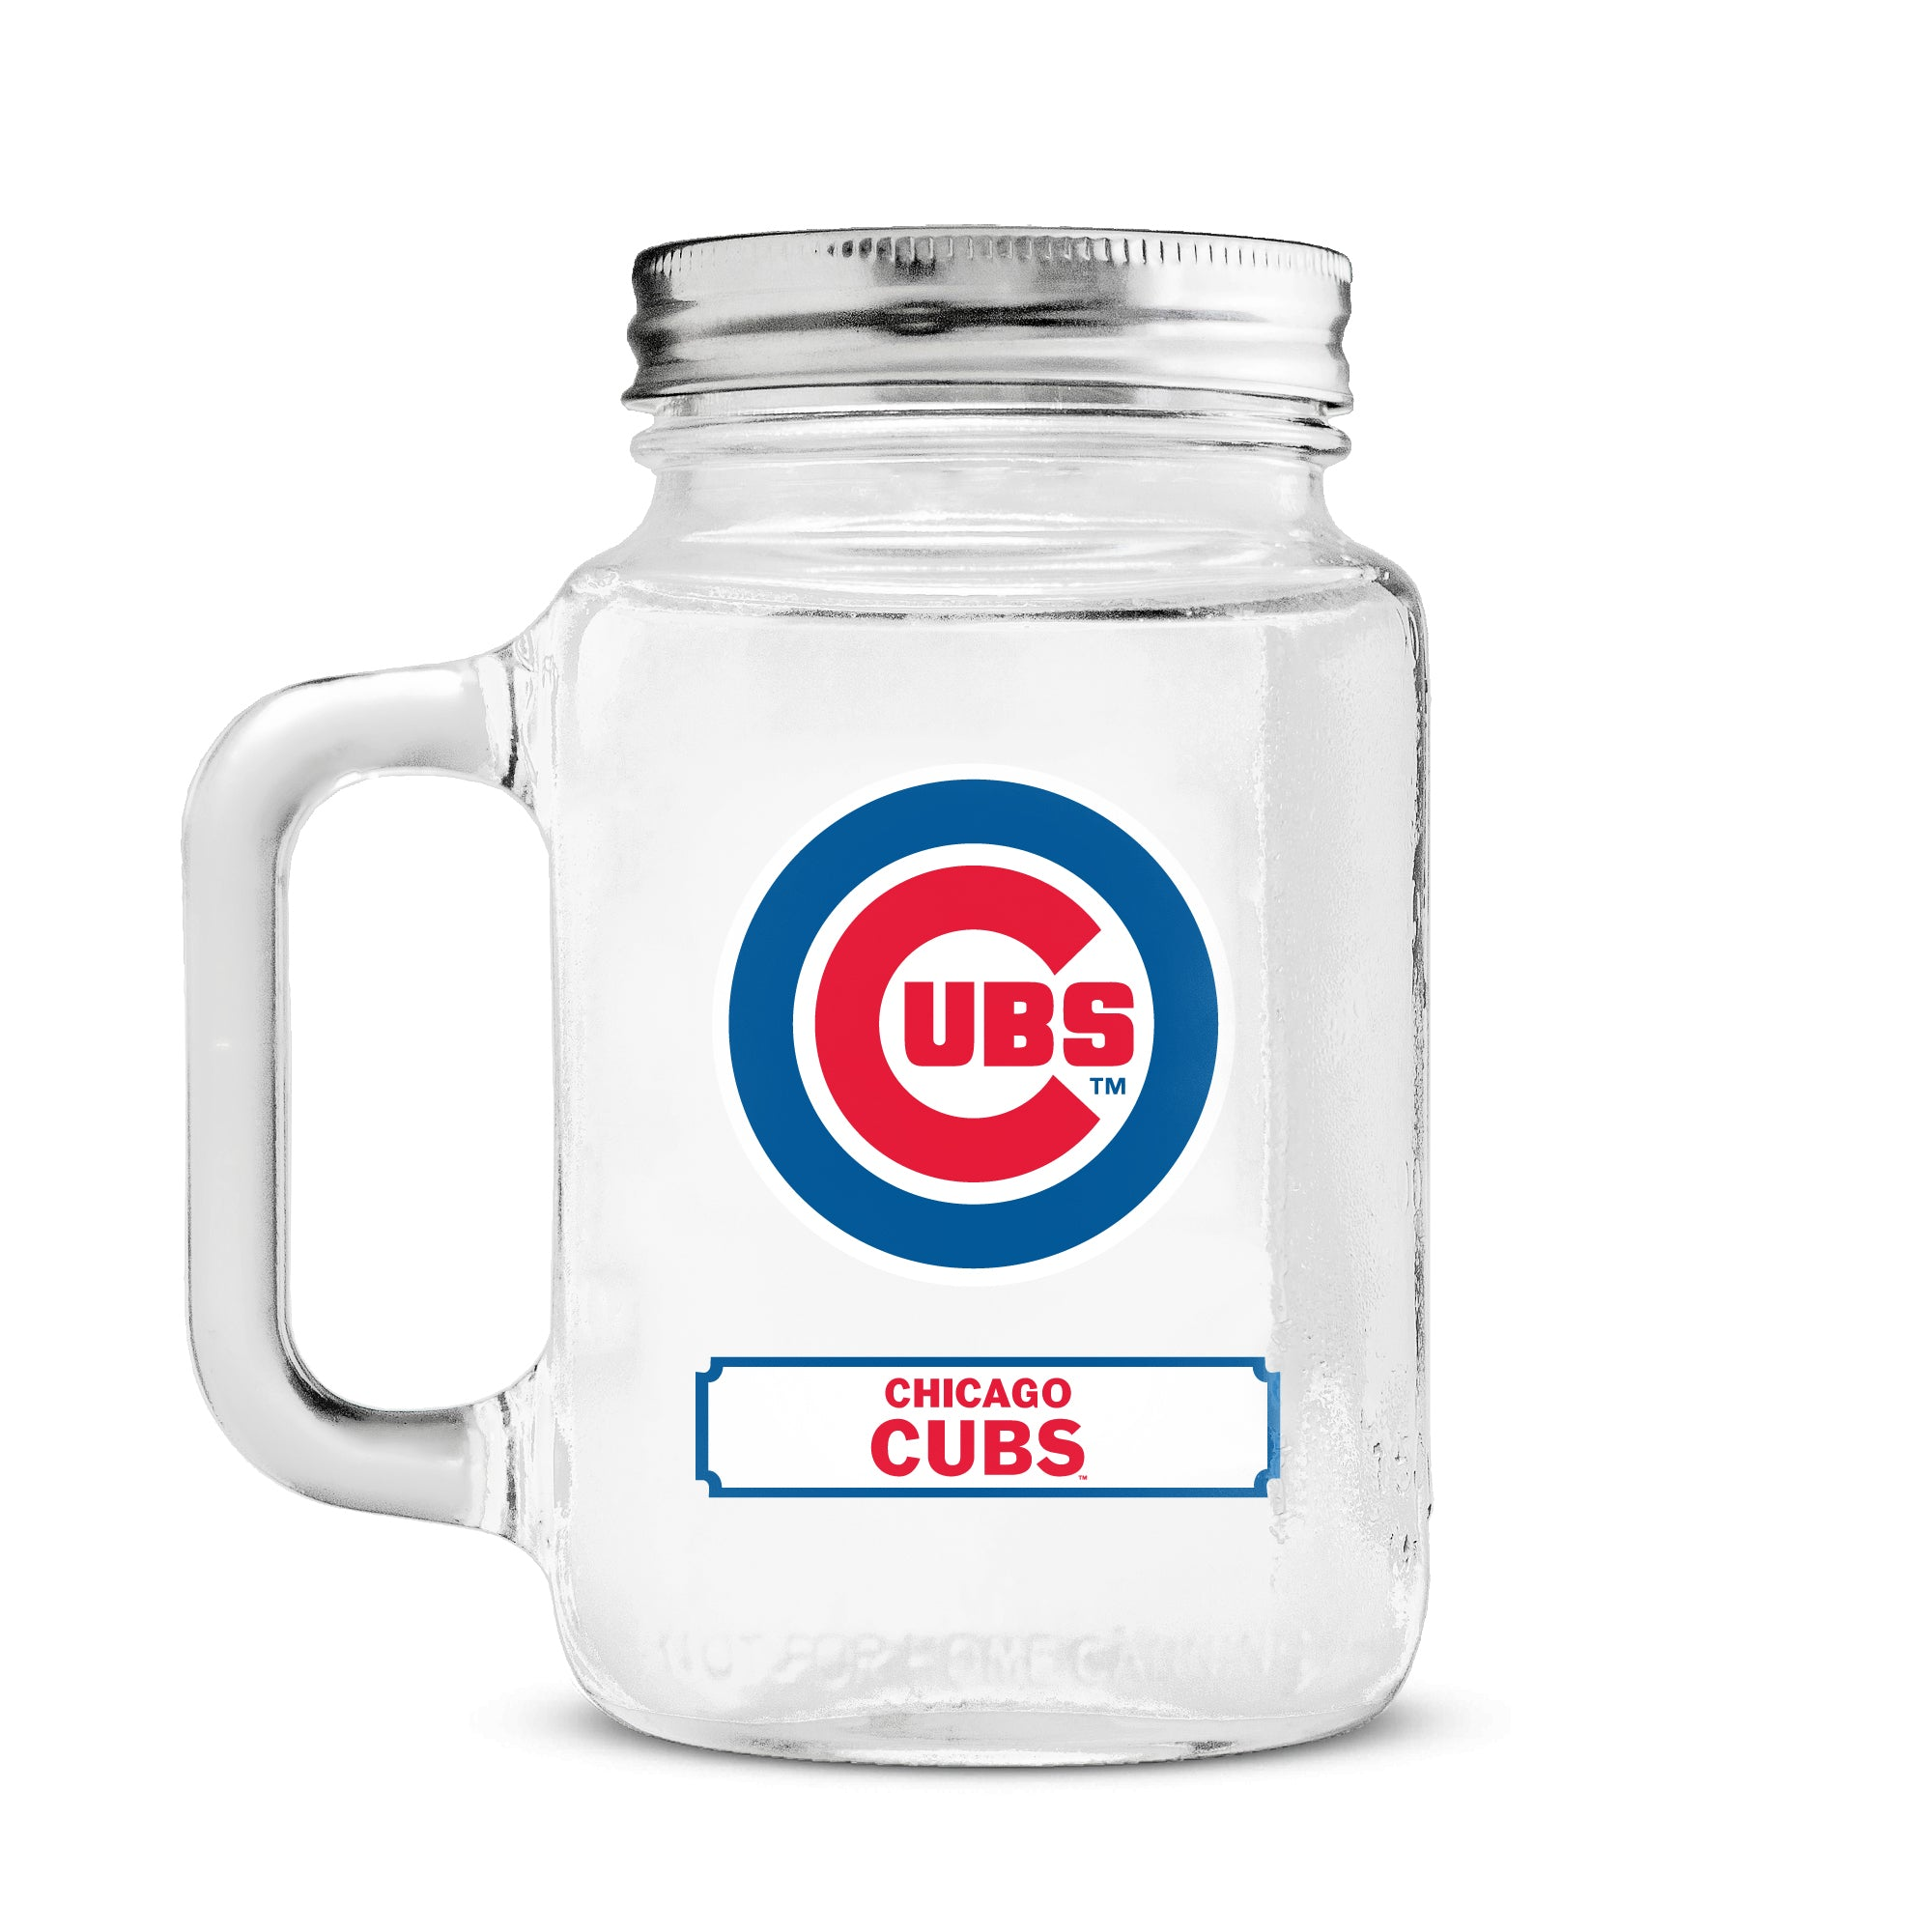 Duckhouse 16 Ounce Mason Jar - Chicago Cubs - Sports Butler